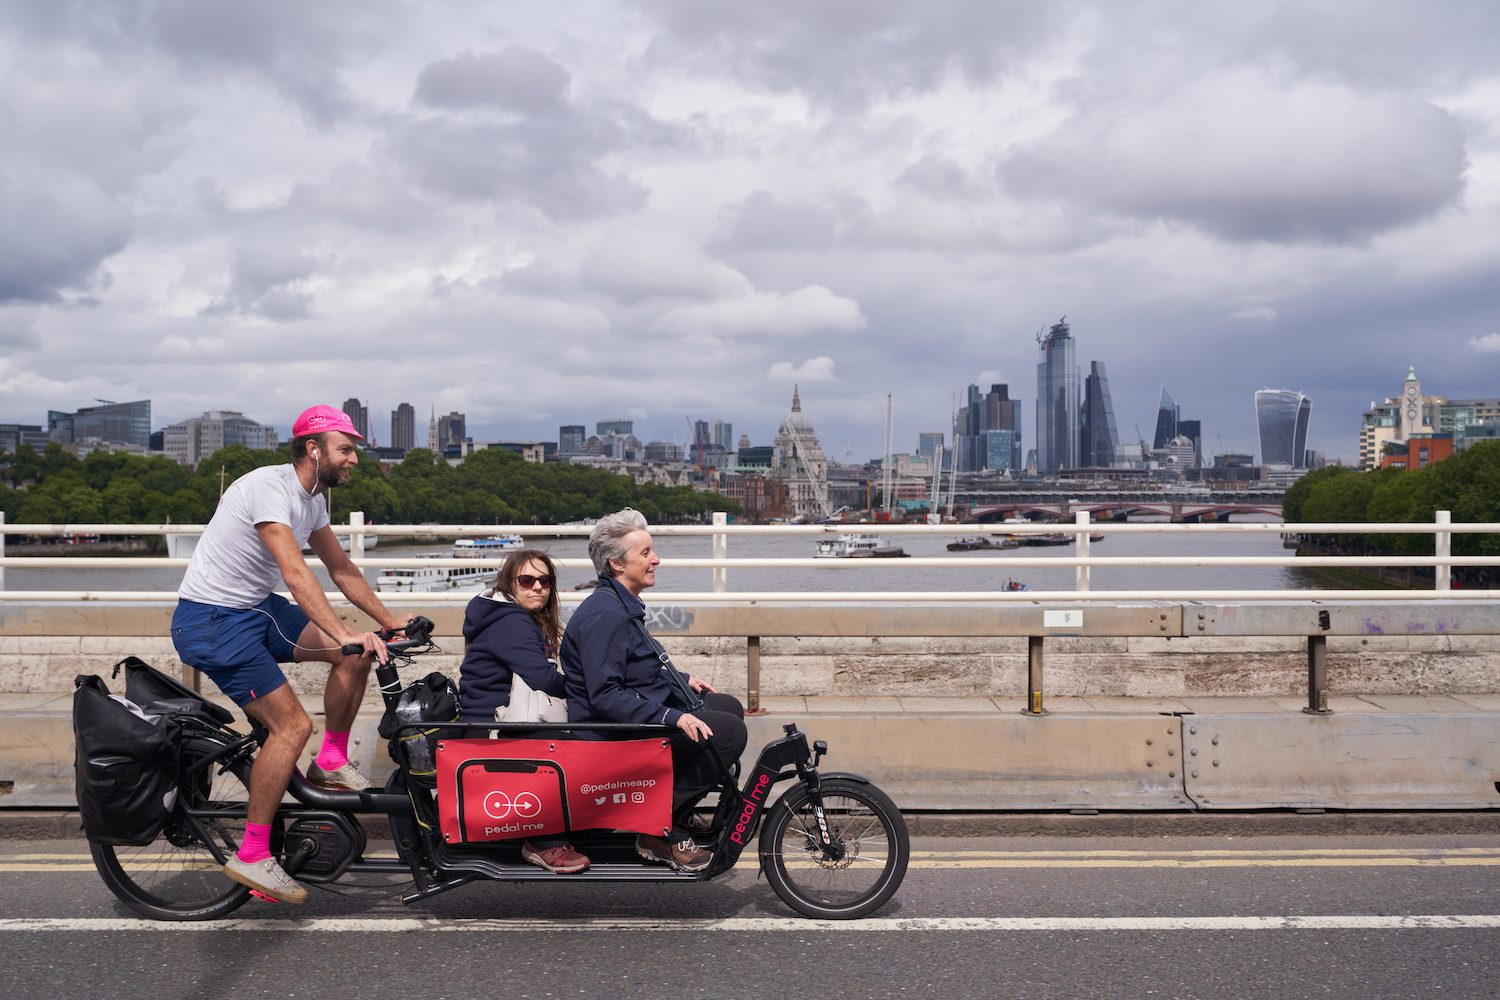 The Highway Code is changing in Great Britain, benefitting walkers and cyclists